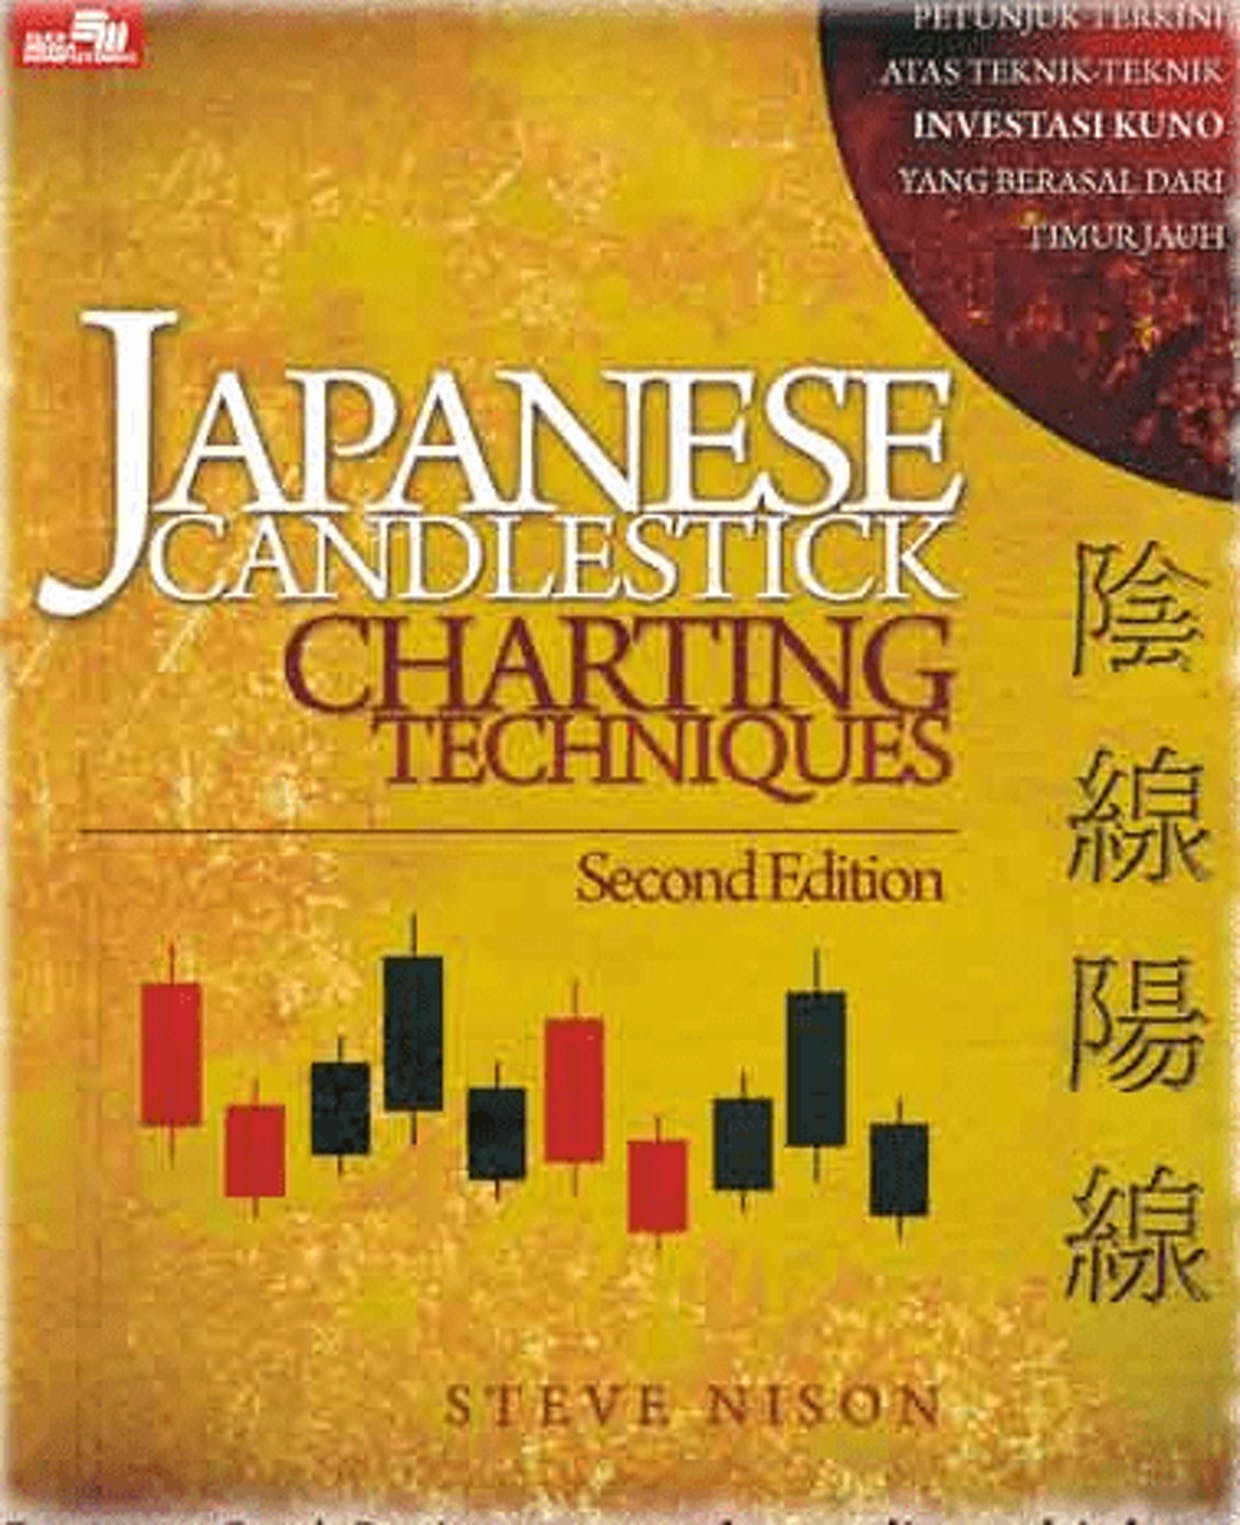 Book Review Of : Japanese Candlestick Charting Techniques